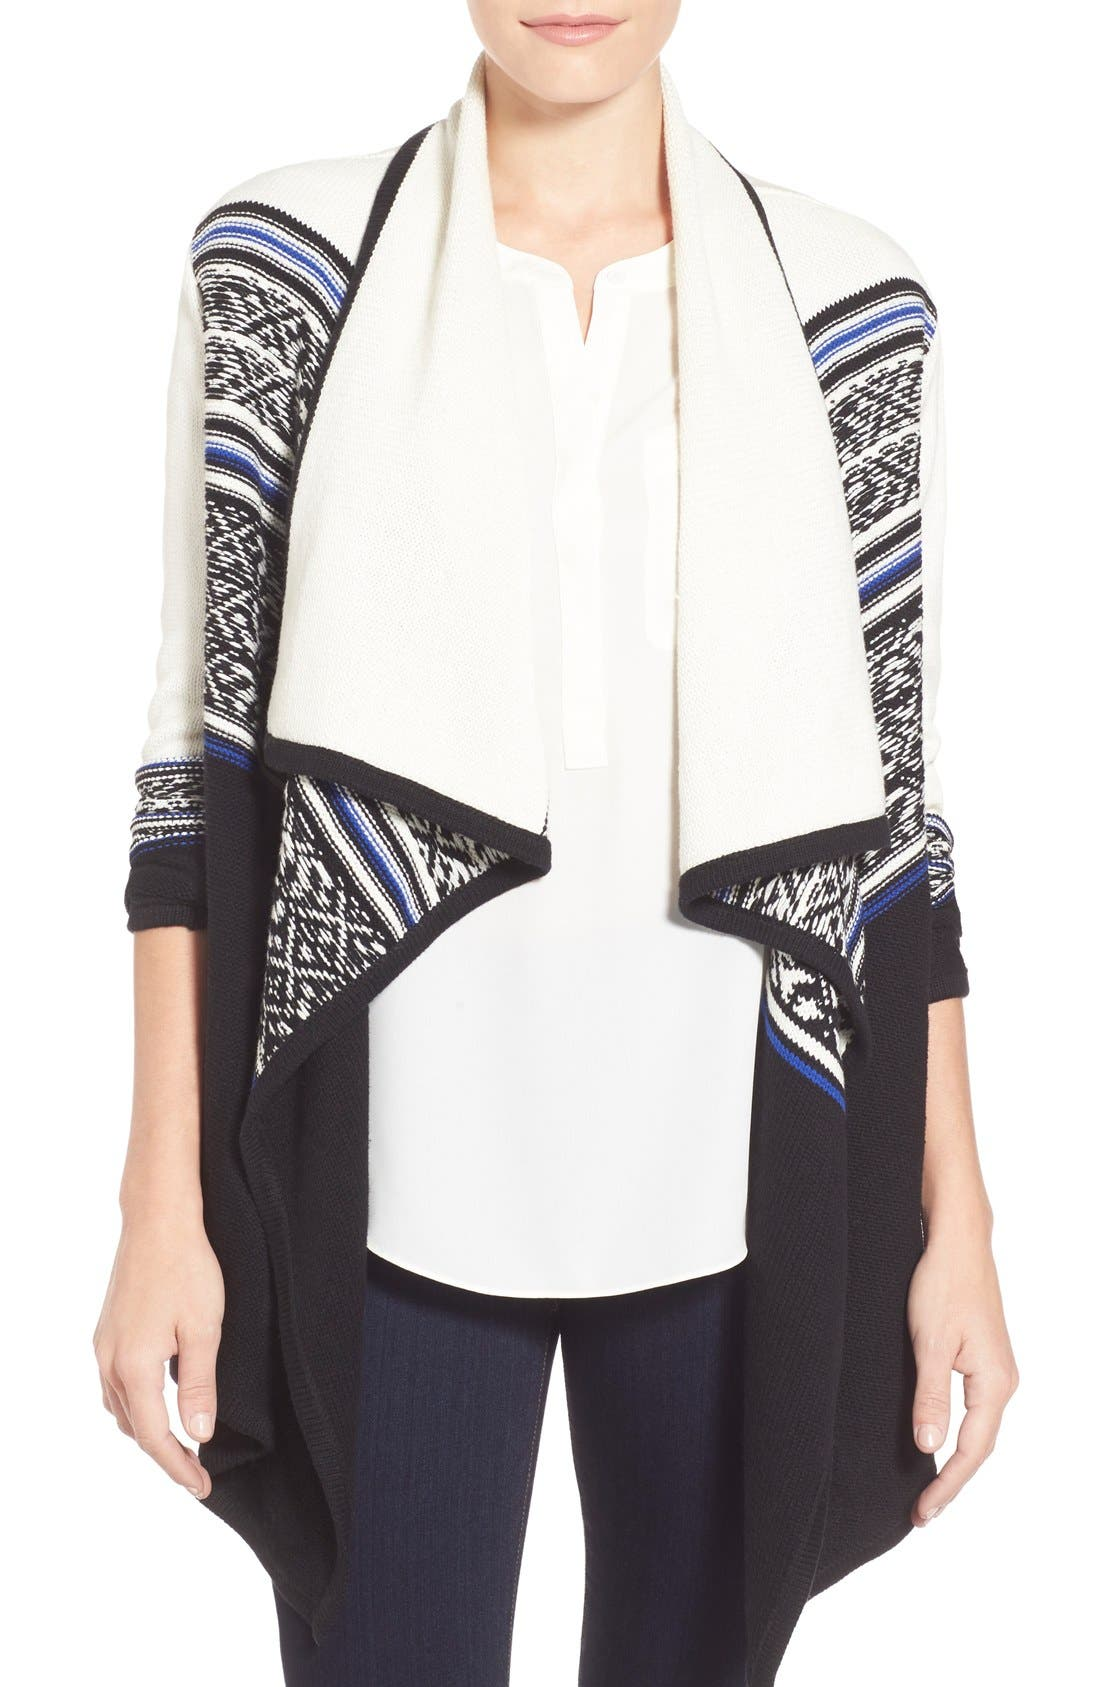 Alternate Image 1 Selected - NYDJ 'Apres' Jacquard Cardigan